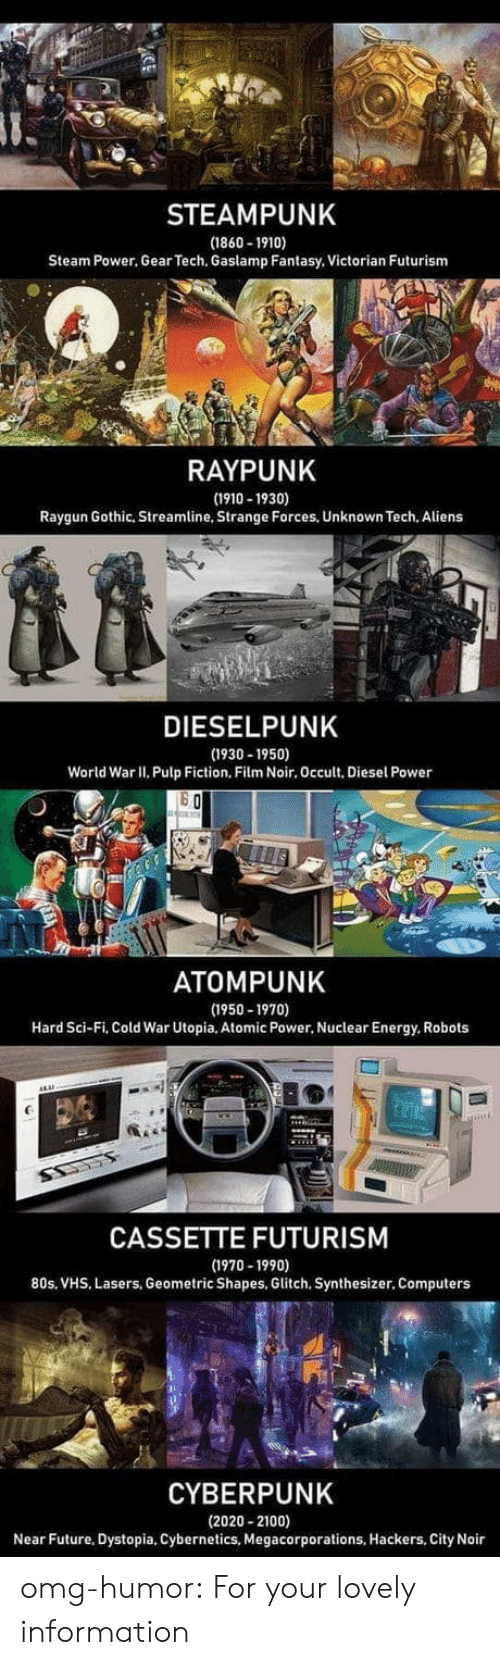 Computers: STEAMPUNK  (1860-1910)  Steam Power, Gear Tech, Gaslamp Fantasy, Victorian Futurism  RAYPUNK  (1910-1930)  Raygun Gothic, Streamline, Strange Forces, Unknown Tech. Aliens  DIESELPUNK  (1930-1950)  World War II. Pulp Fiction, Film Noir, Occult, Diesel Power  ATOMPUNK  (1950-1970)  Hard Sci-Fi, Cold War Utopia, Atomic Power, Nuclear Energy, Robots  CASSETTE FUTURISM  (1970-1990)  80s, VHS, Lasers, Geometric Shapes, Glitch, Synthesizer. Computers  CYBERPUNK  (2020-2100)  Near Future, Dystopia, Cybernetics, Megacorporations, Hackers, City Noir omg-humor:  For your lovely information